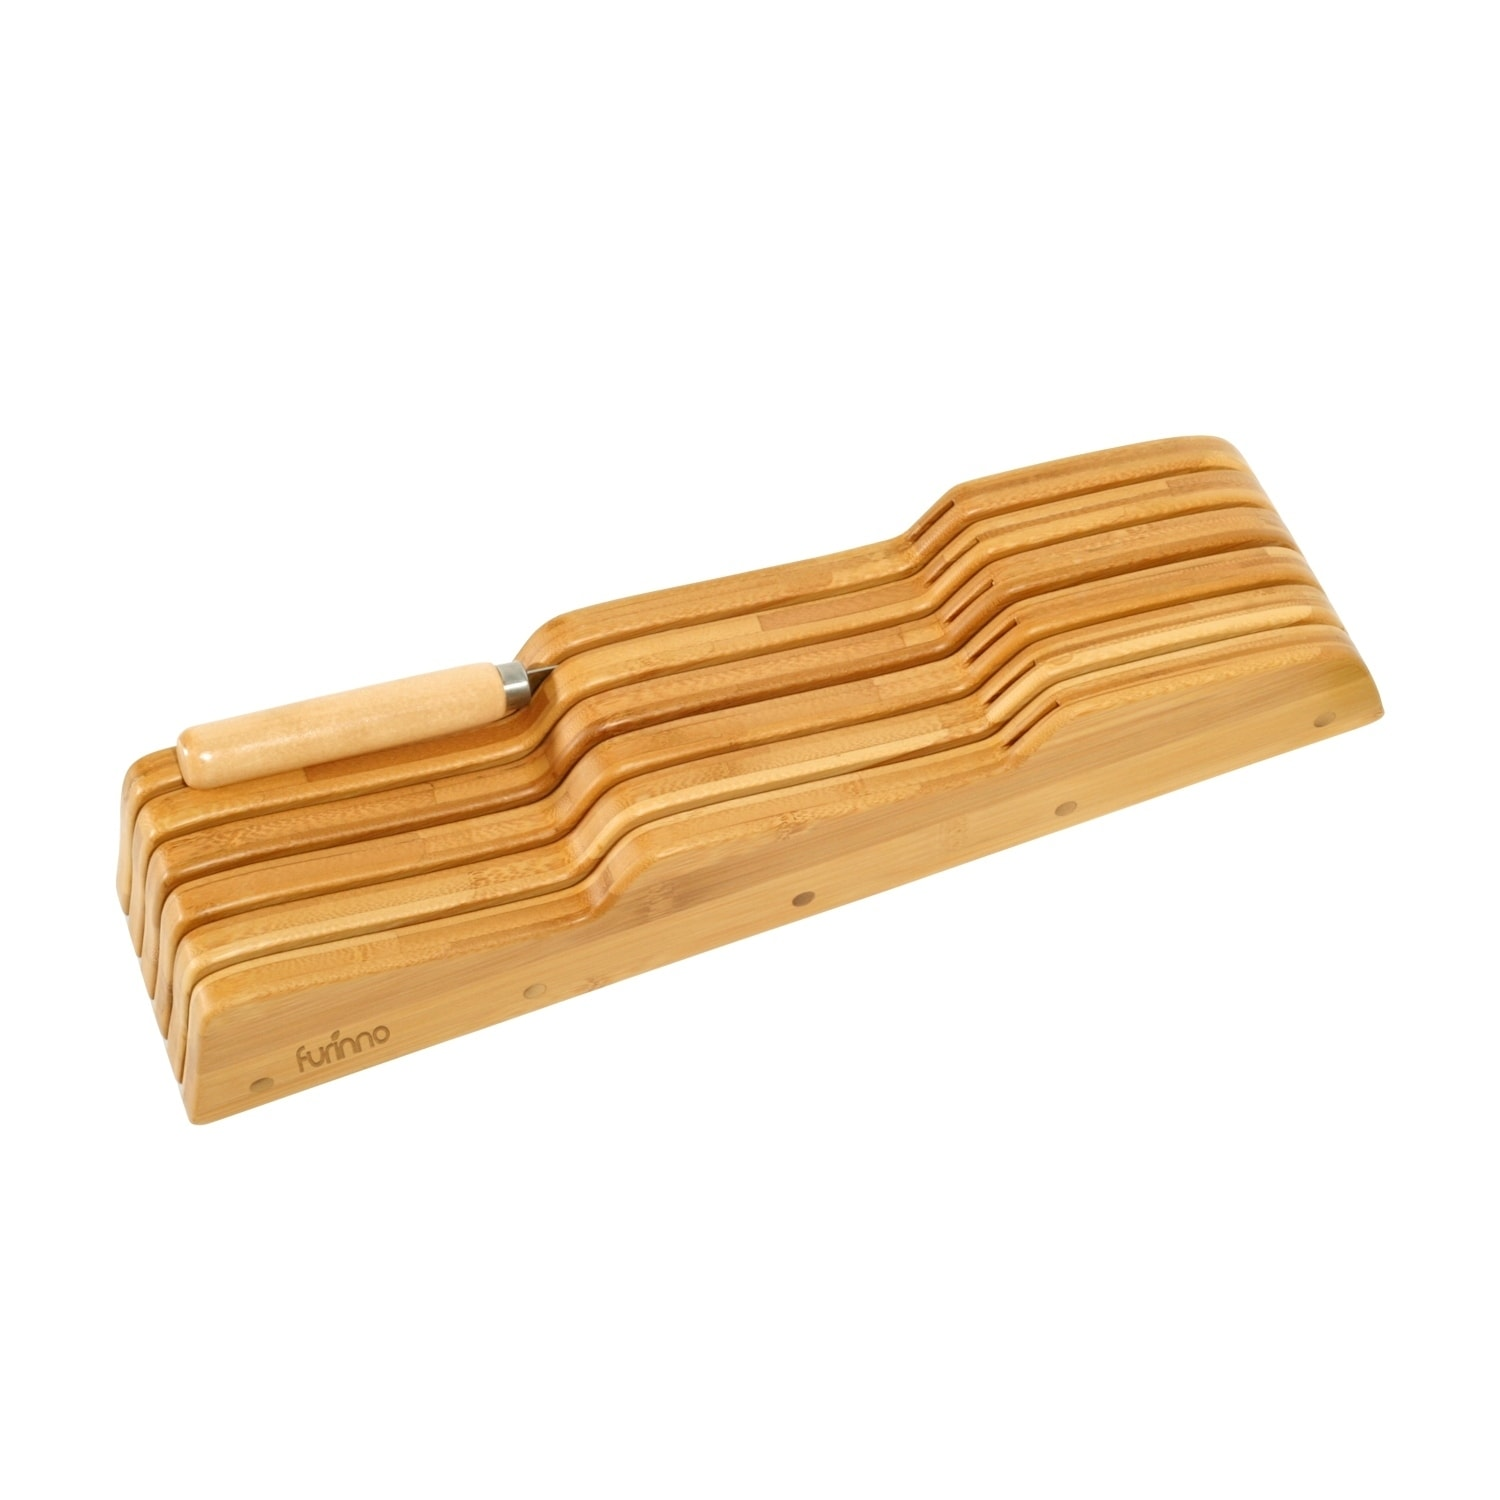 Furinno DaPur Bamboo In Drawer Knife Holder FK8717, Tan (...